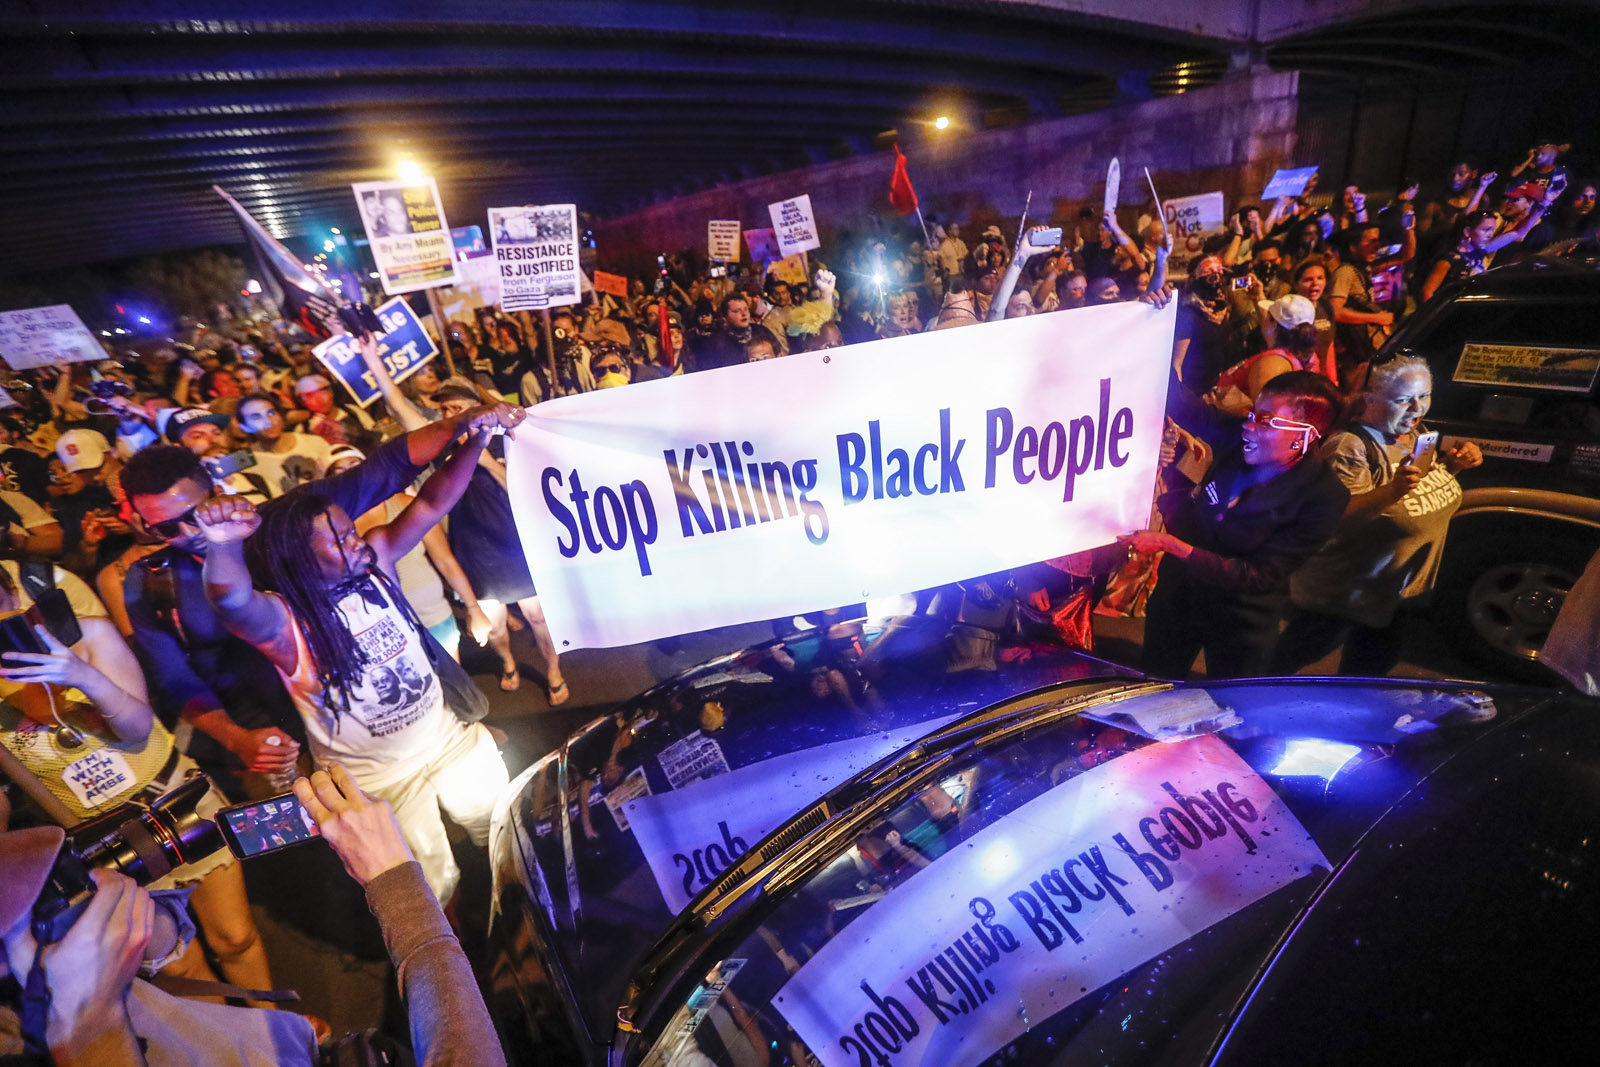 Black Lives Matter demonstrators gather at the police vehicle stuck facing northbound during a protest march south on Broad Street in Philadelphia, Tuesday, July 26, 2016, during the second day of the Democratic National Convention. (AP Photo/John Minchillo)